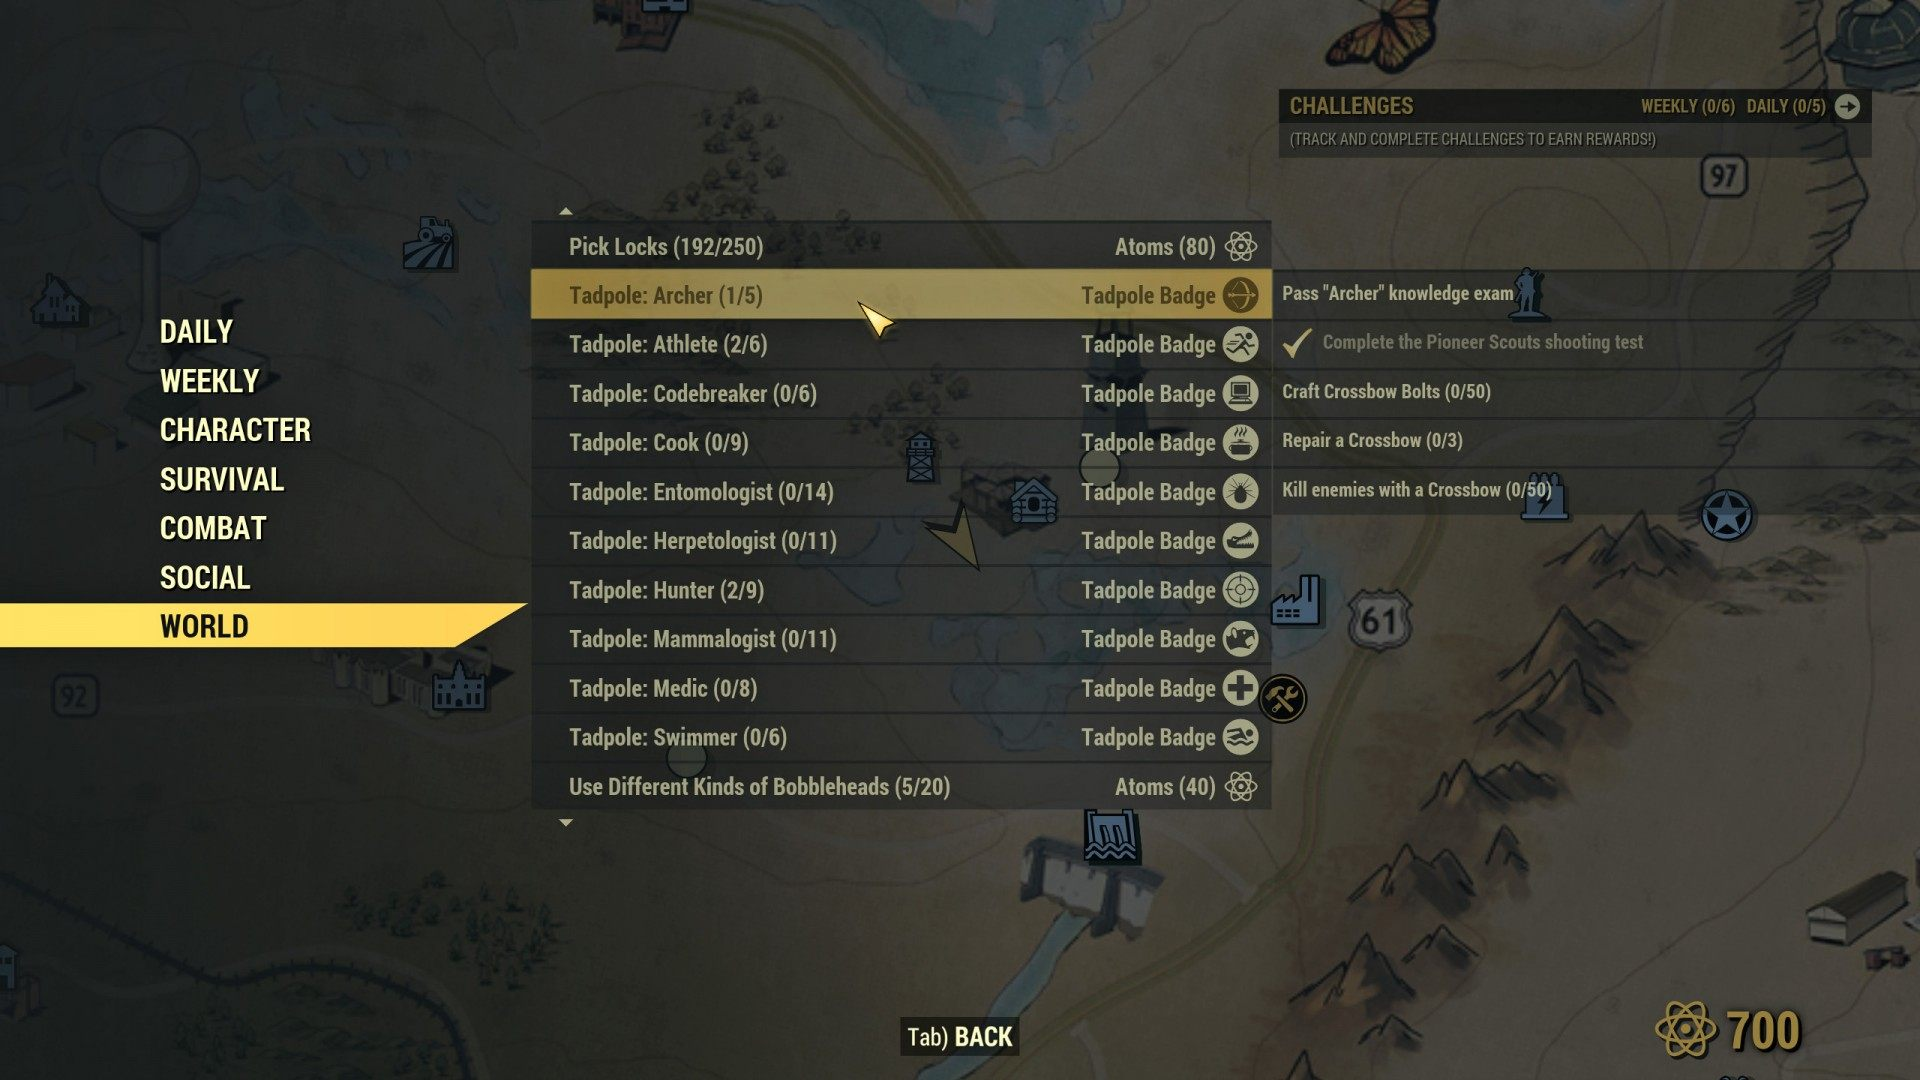 The Order of the Tadpole, Fallout 76 Quest